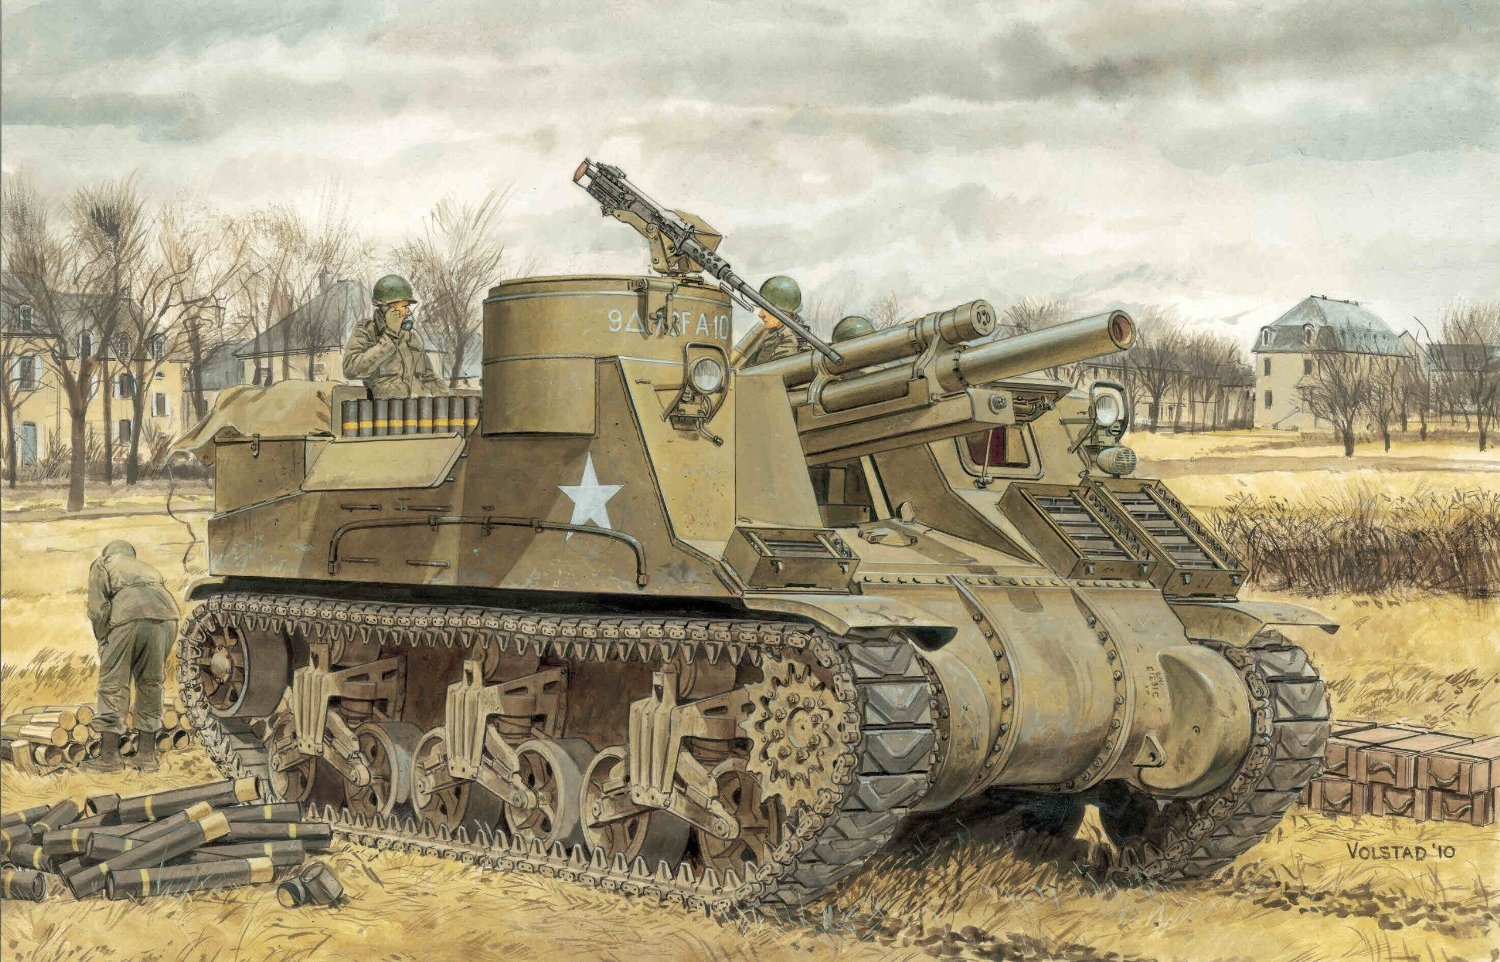 Volstad Ronald. САУ M-7 Priest (105mm Howitzer Motor Carriage M-7 Priest).